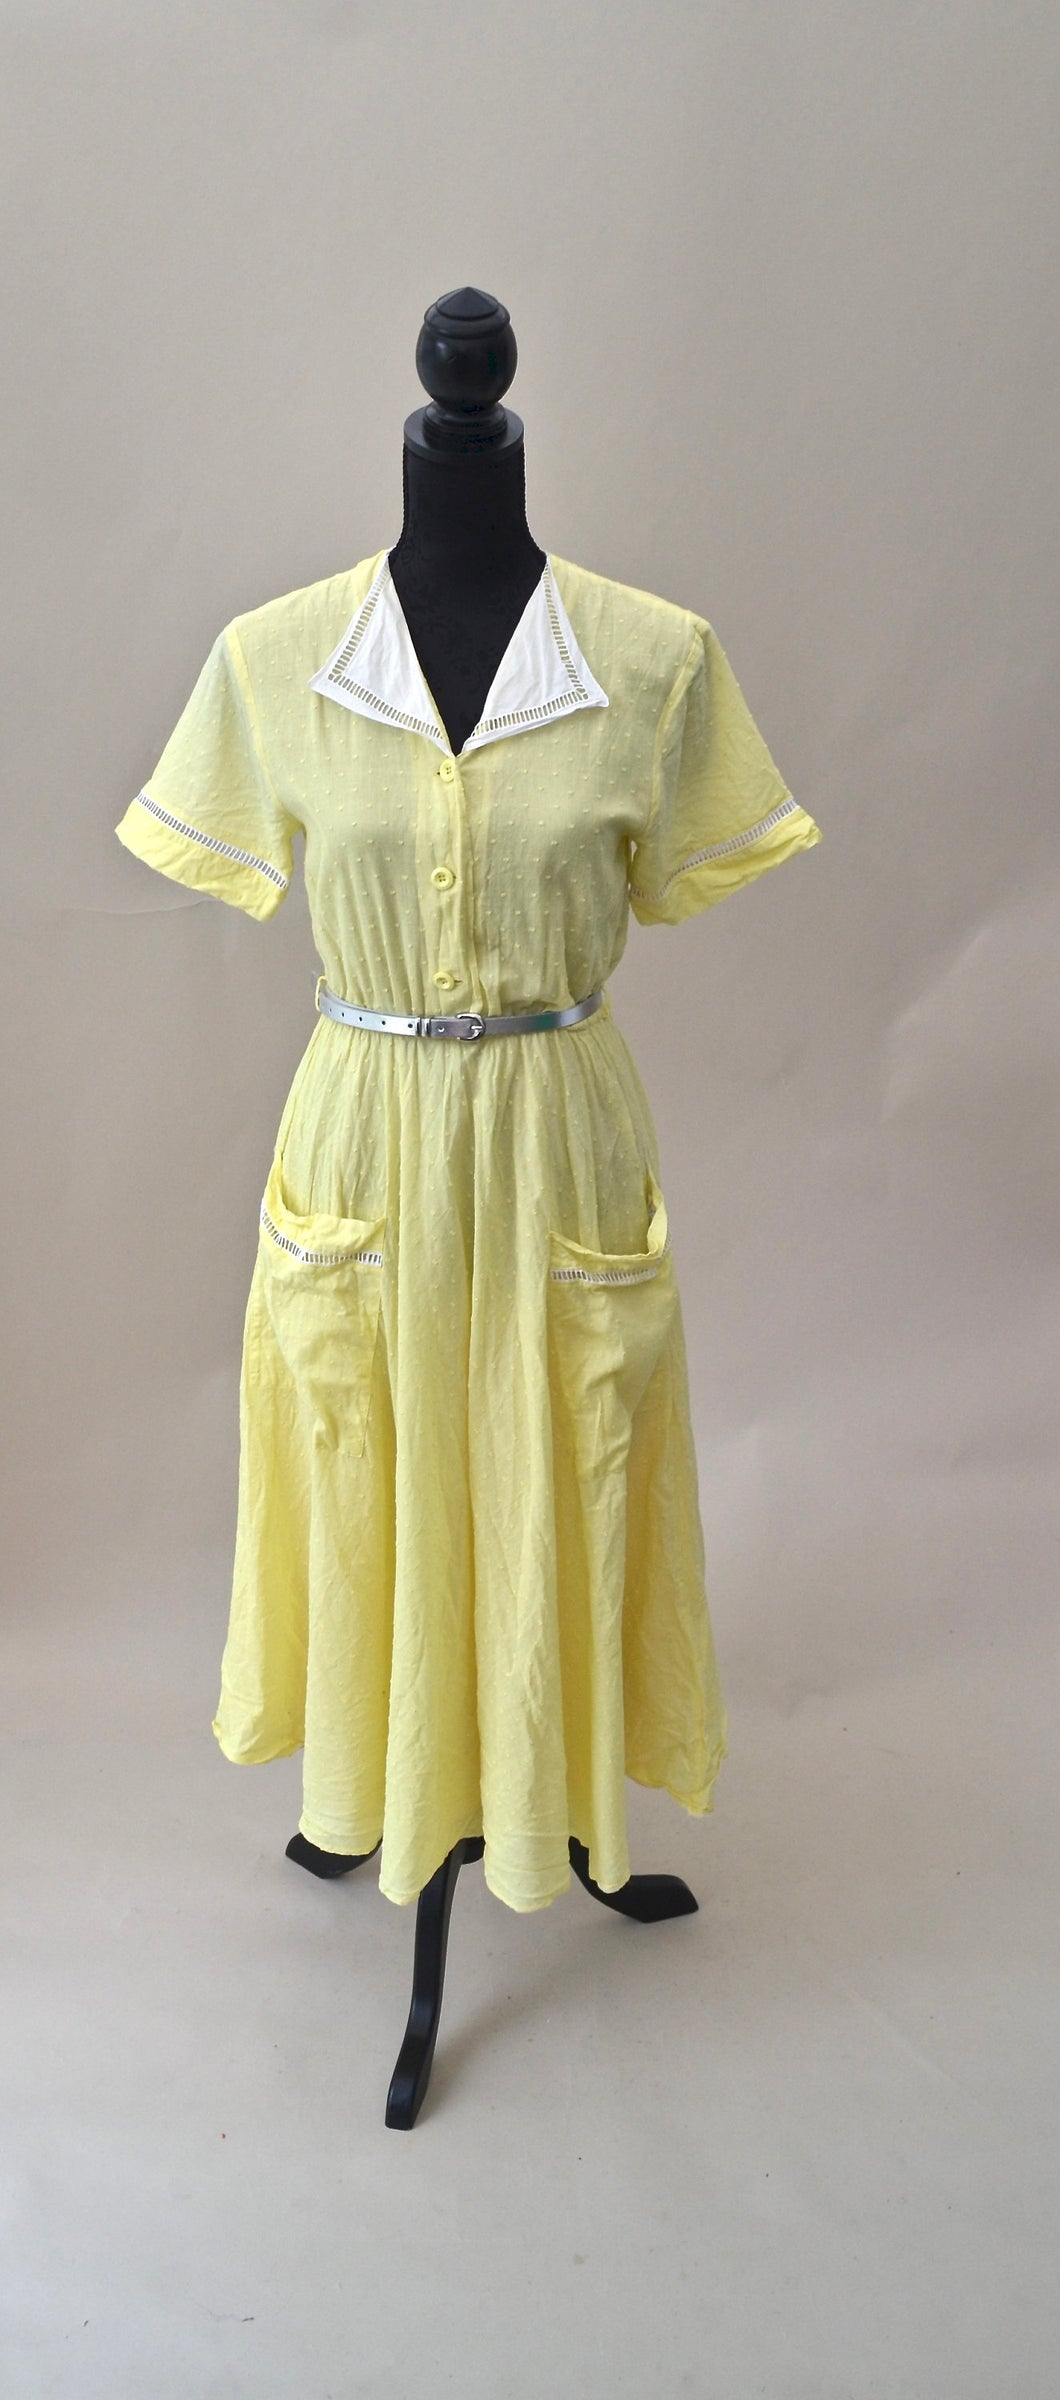 1980s Yellow and white dress| Dress with pockets | Casual day dress | Est UK size 8/10